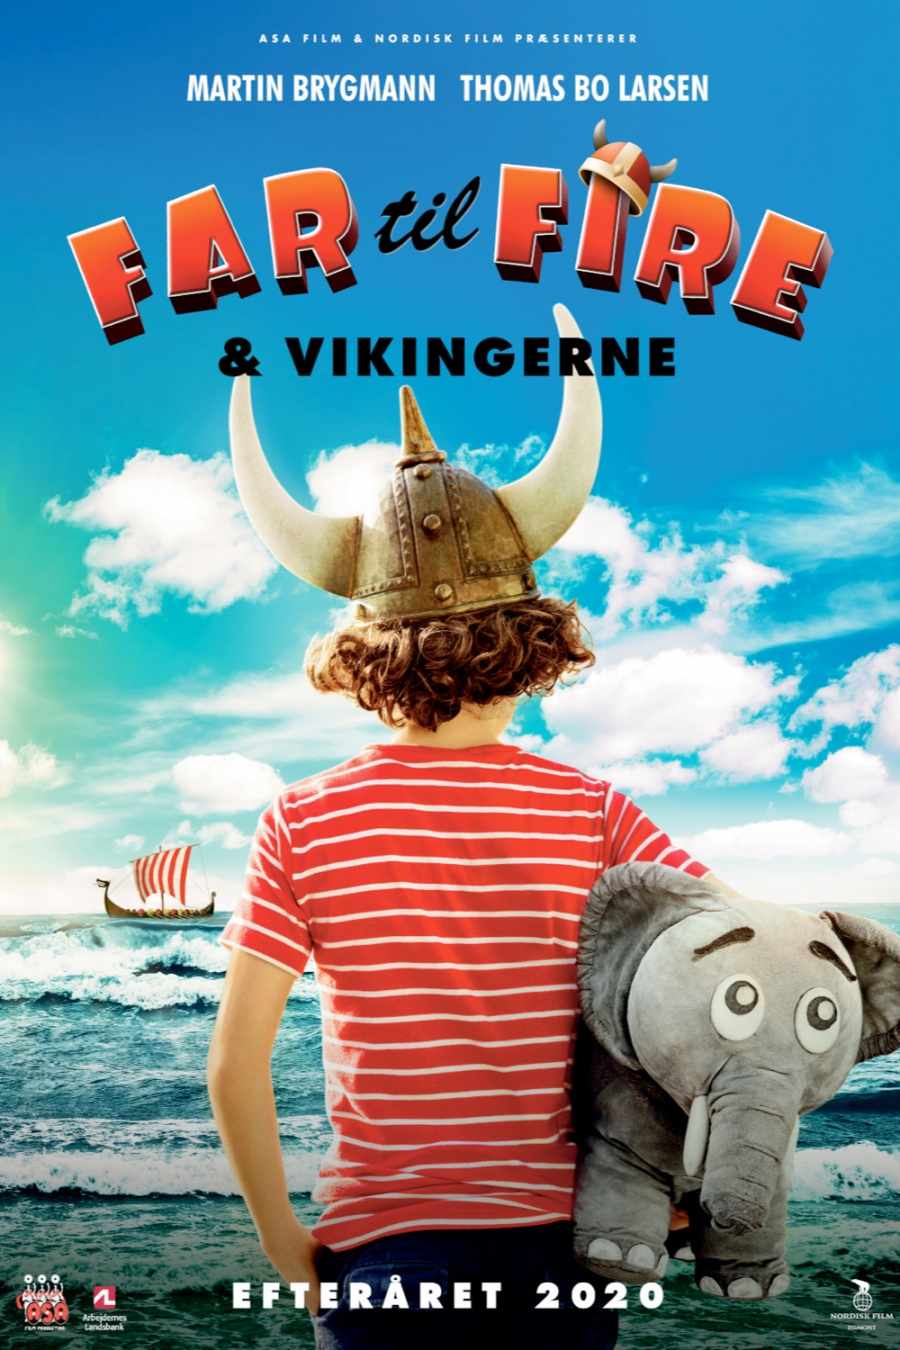 Far til fire og vikingerne